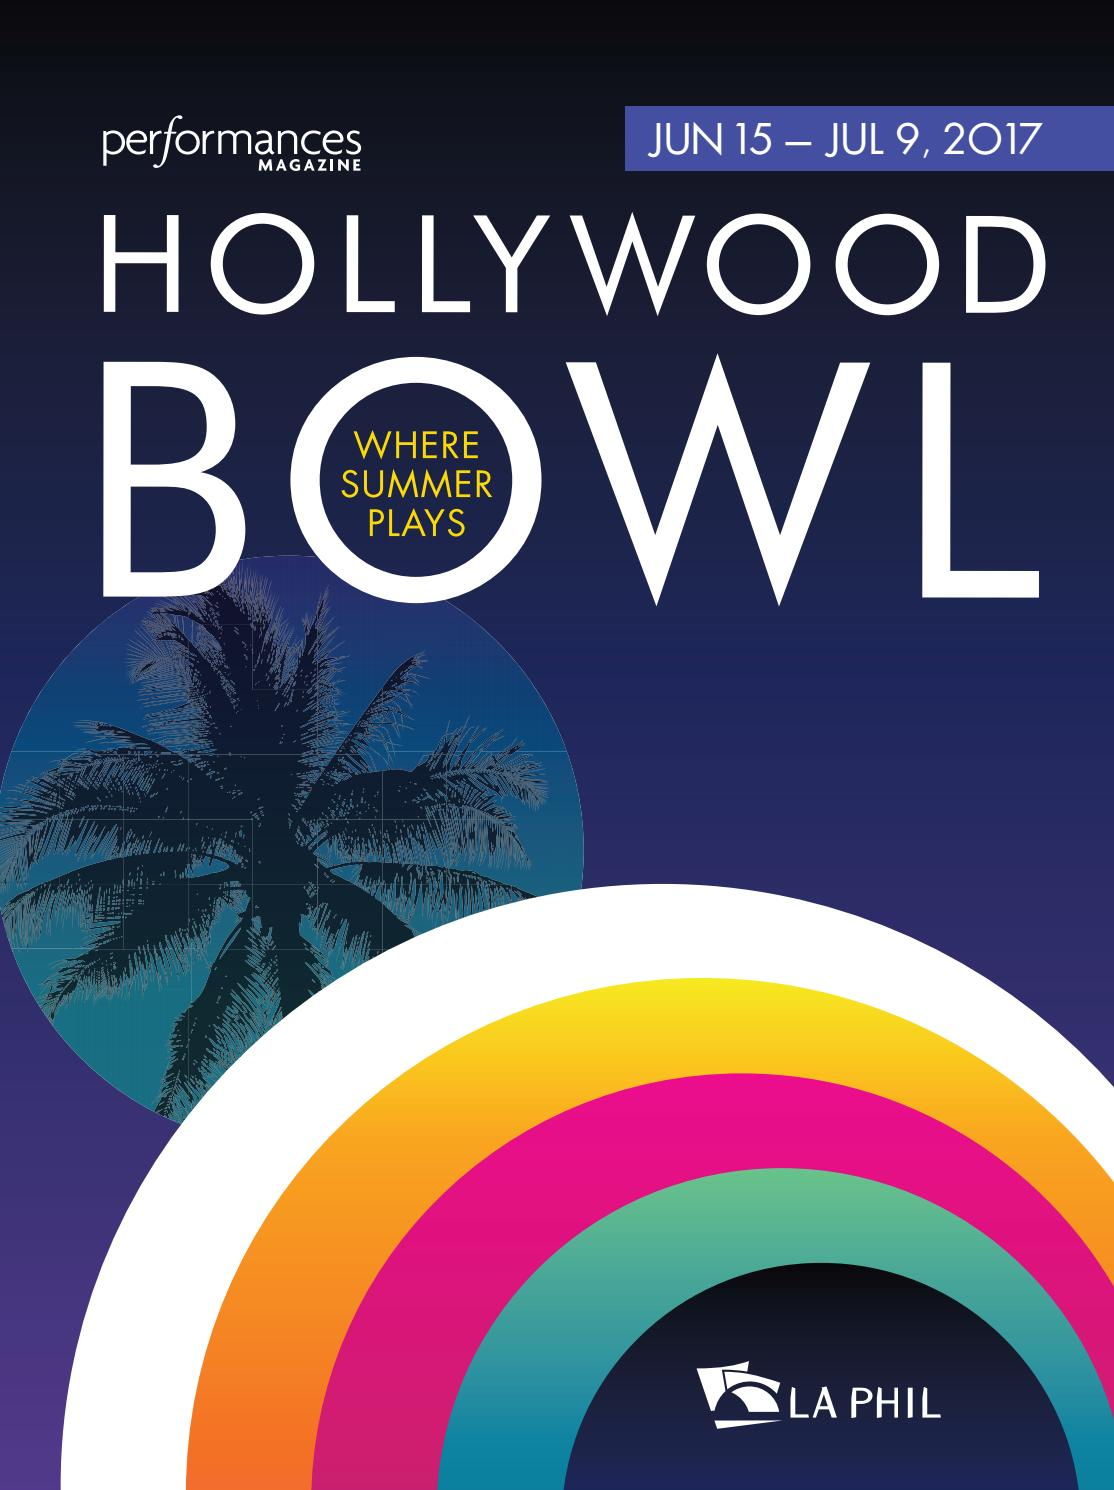 Performances Magazine Hollywood Bowl 2017 by SoCalMedia - issuu